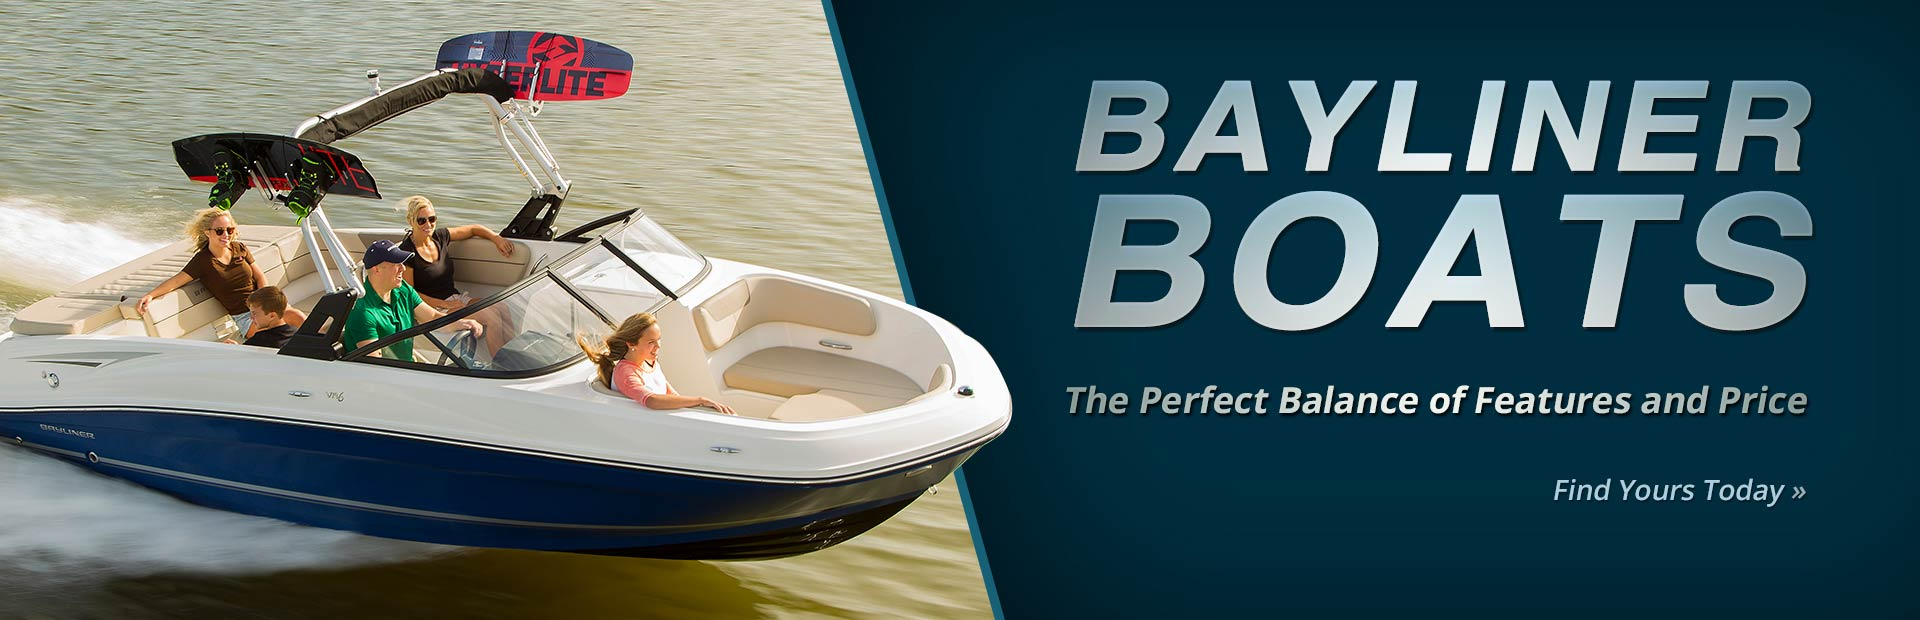 hight resolution of bayliner boats click here to view the models